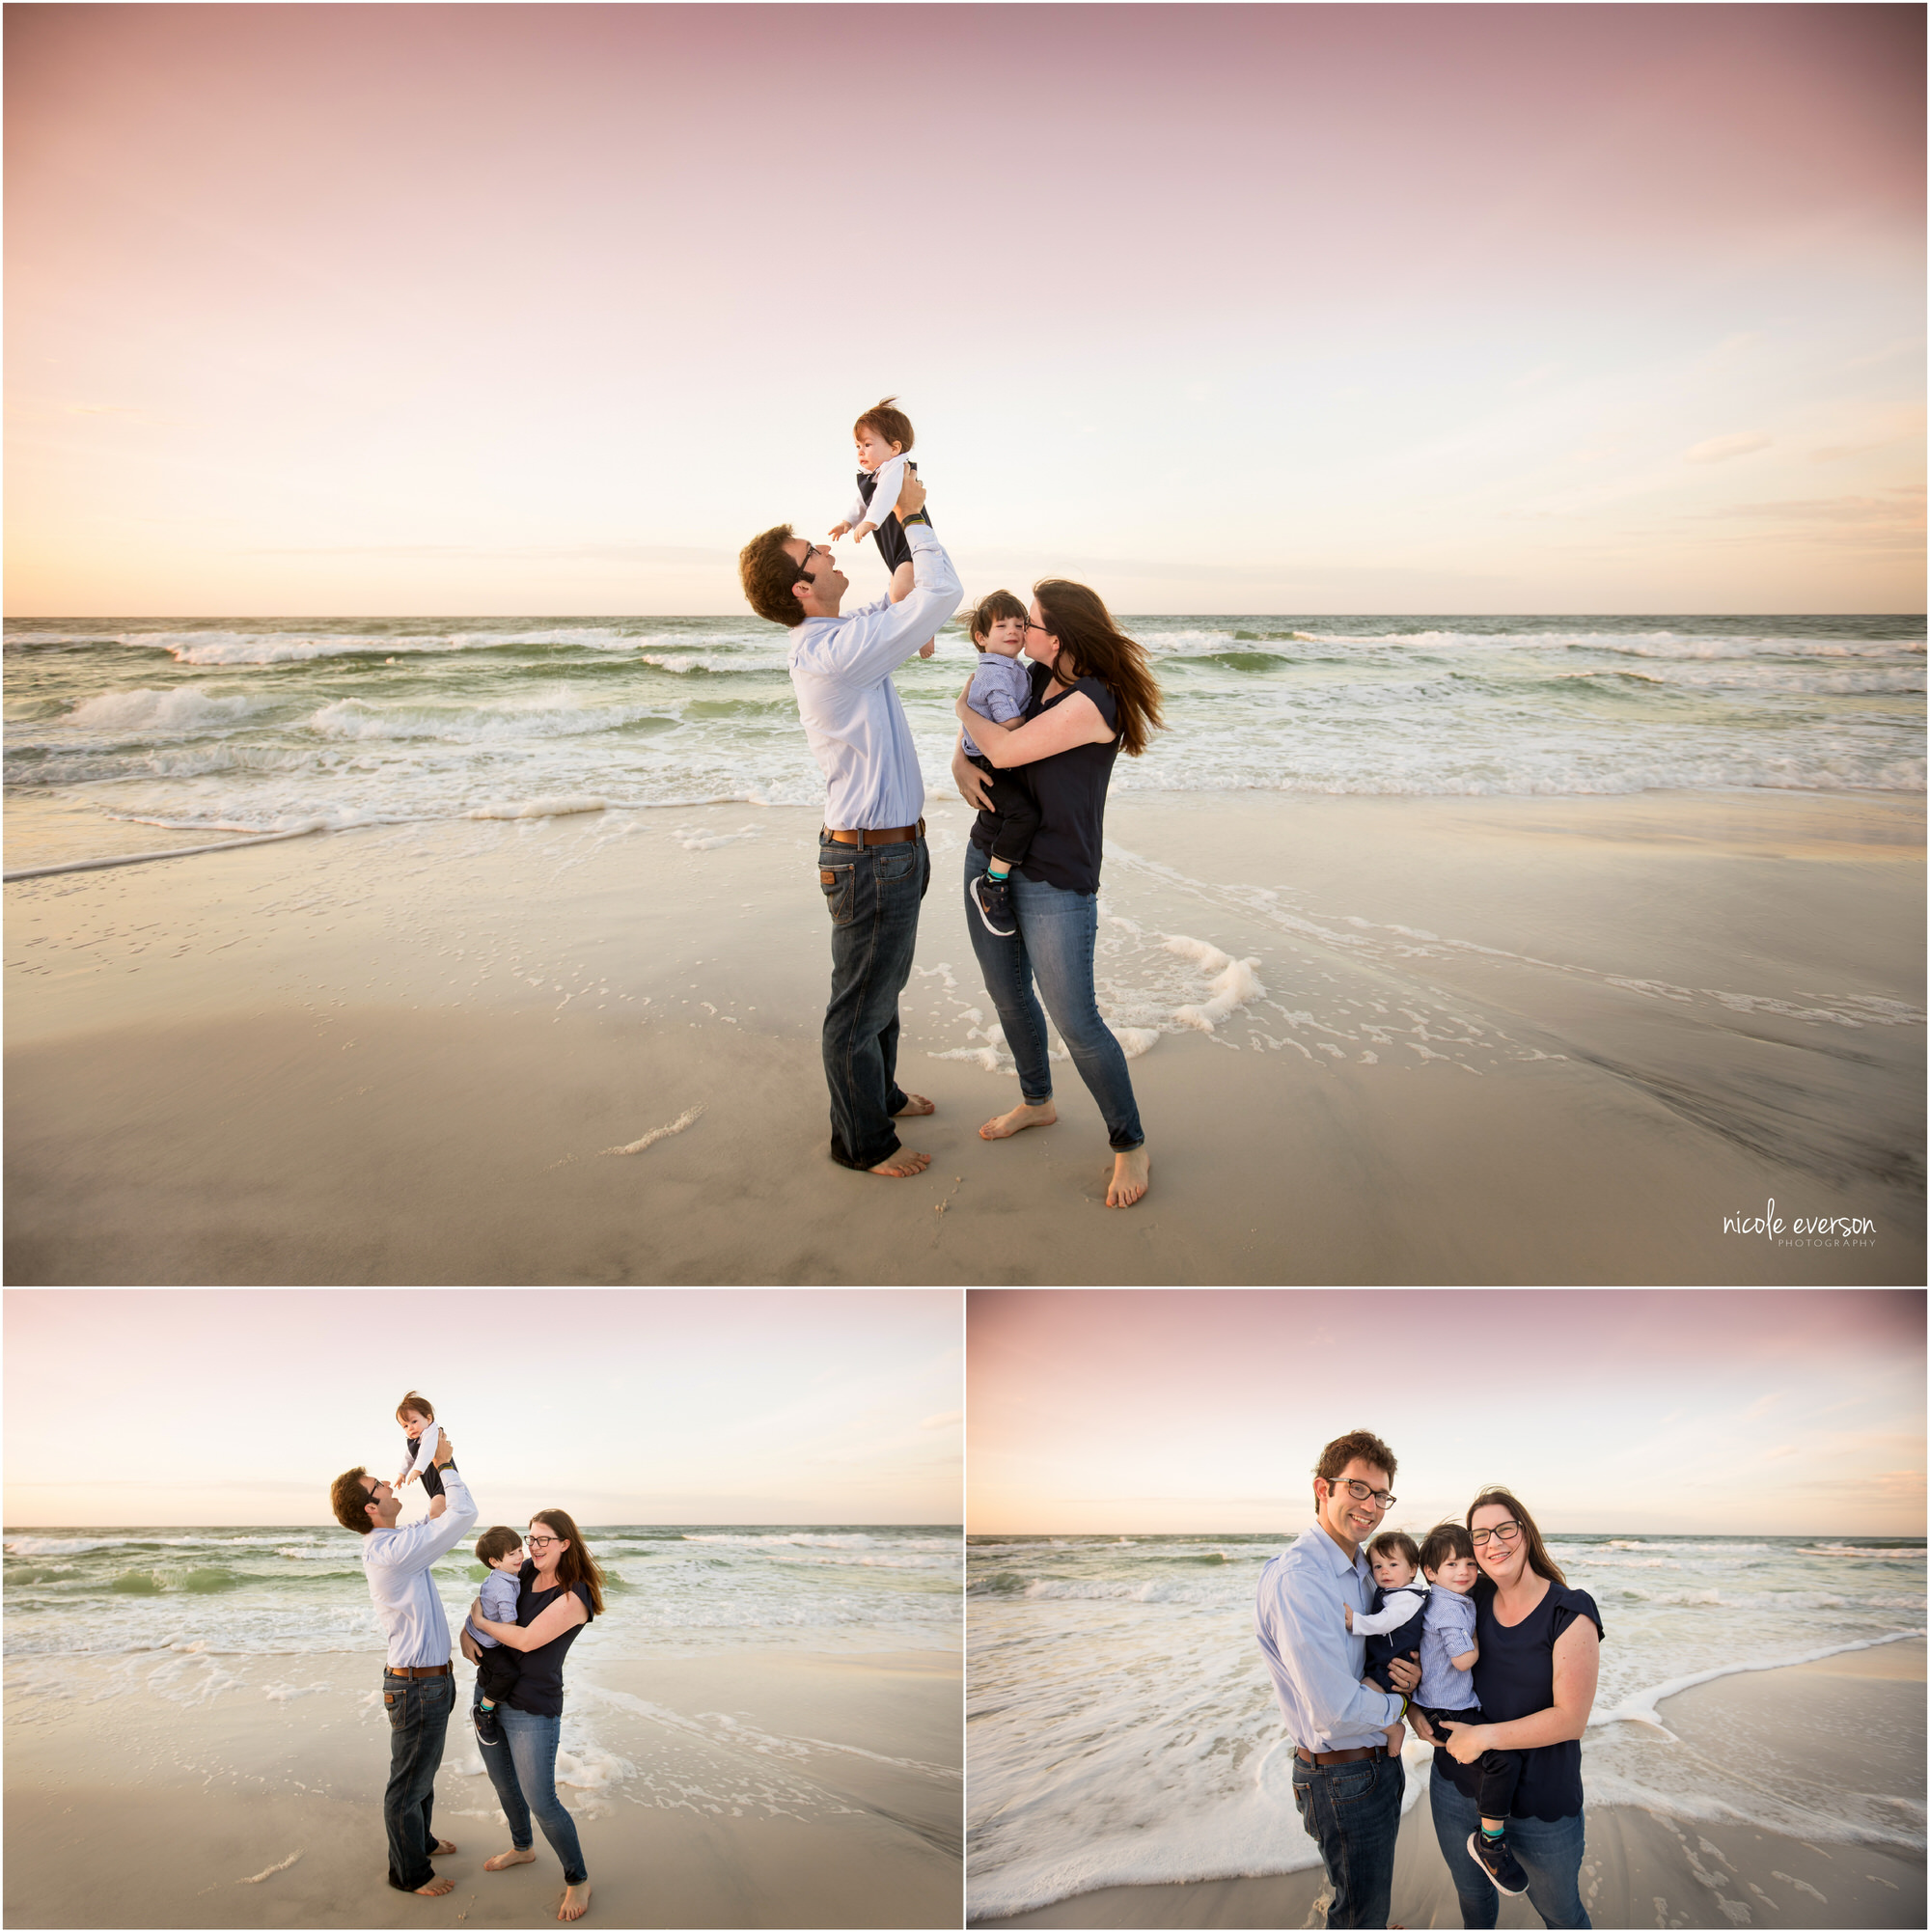 Family of four playing on Seaside Beach with Nicole Everson Photography.